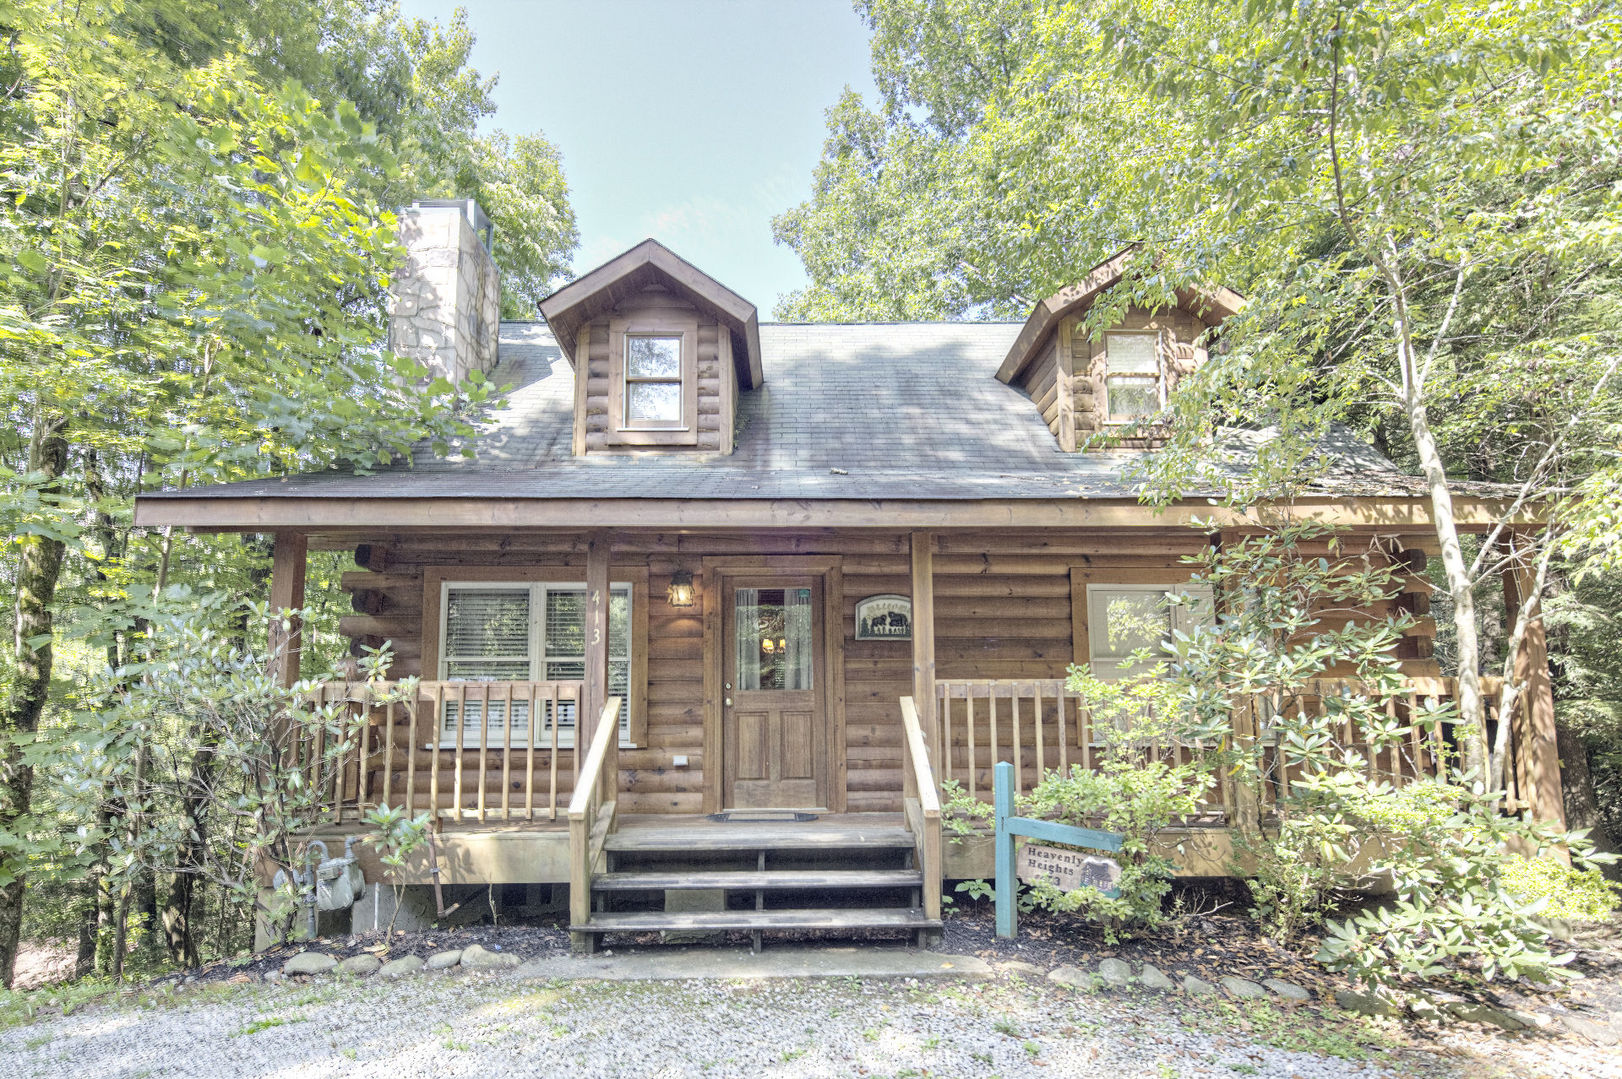 Gatlinburg cabins heavenly heights for Gatlinburg cabins with fishing access